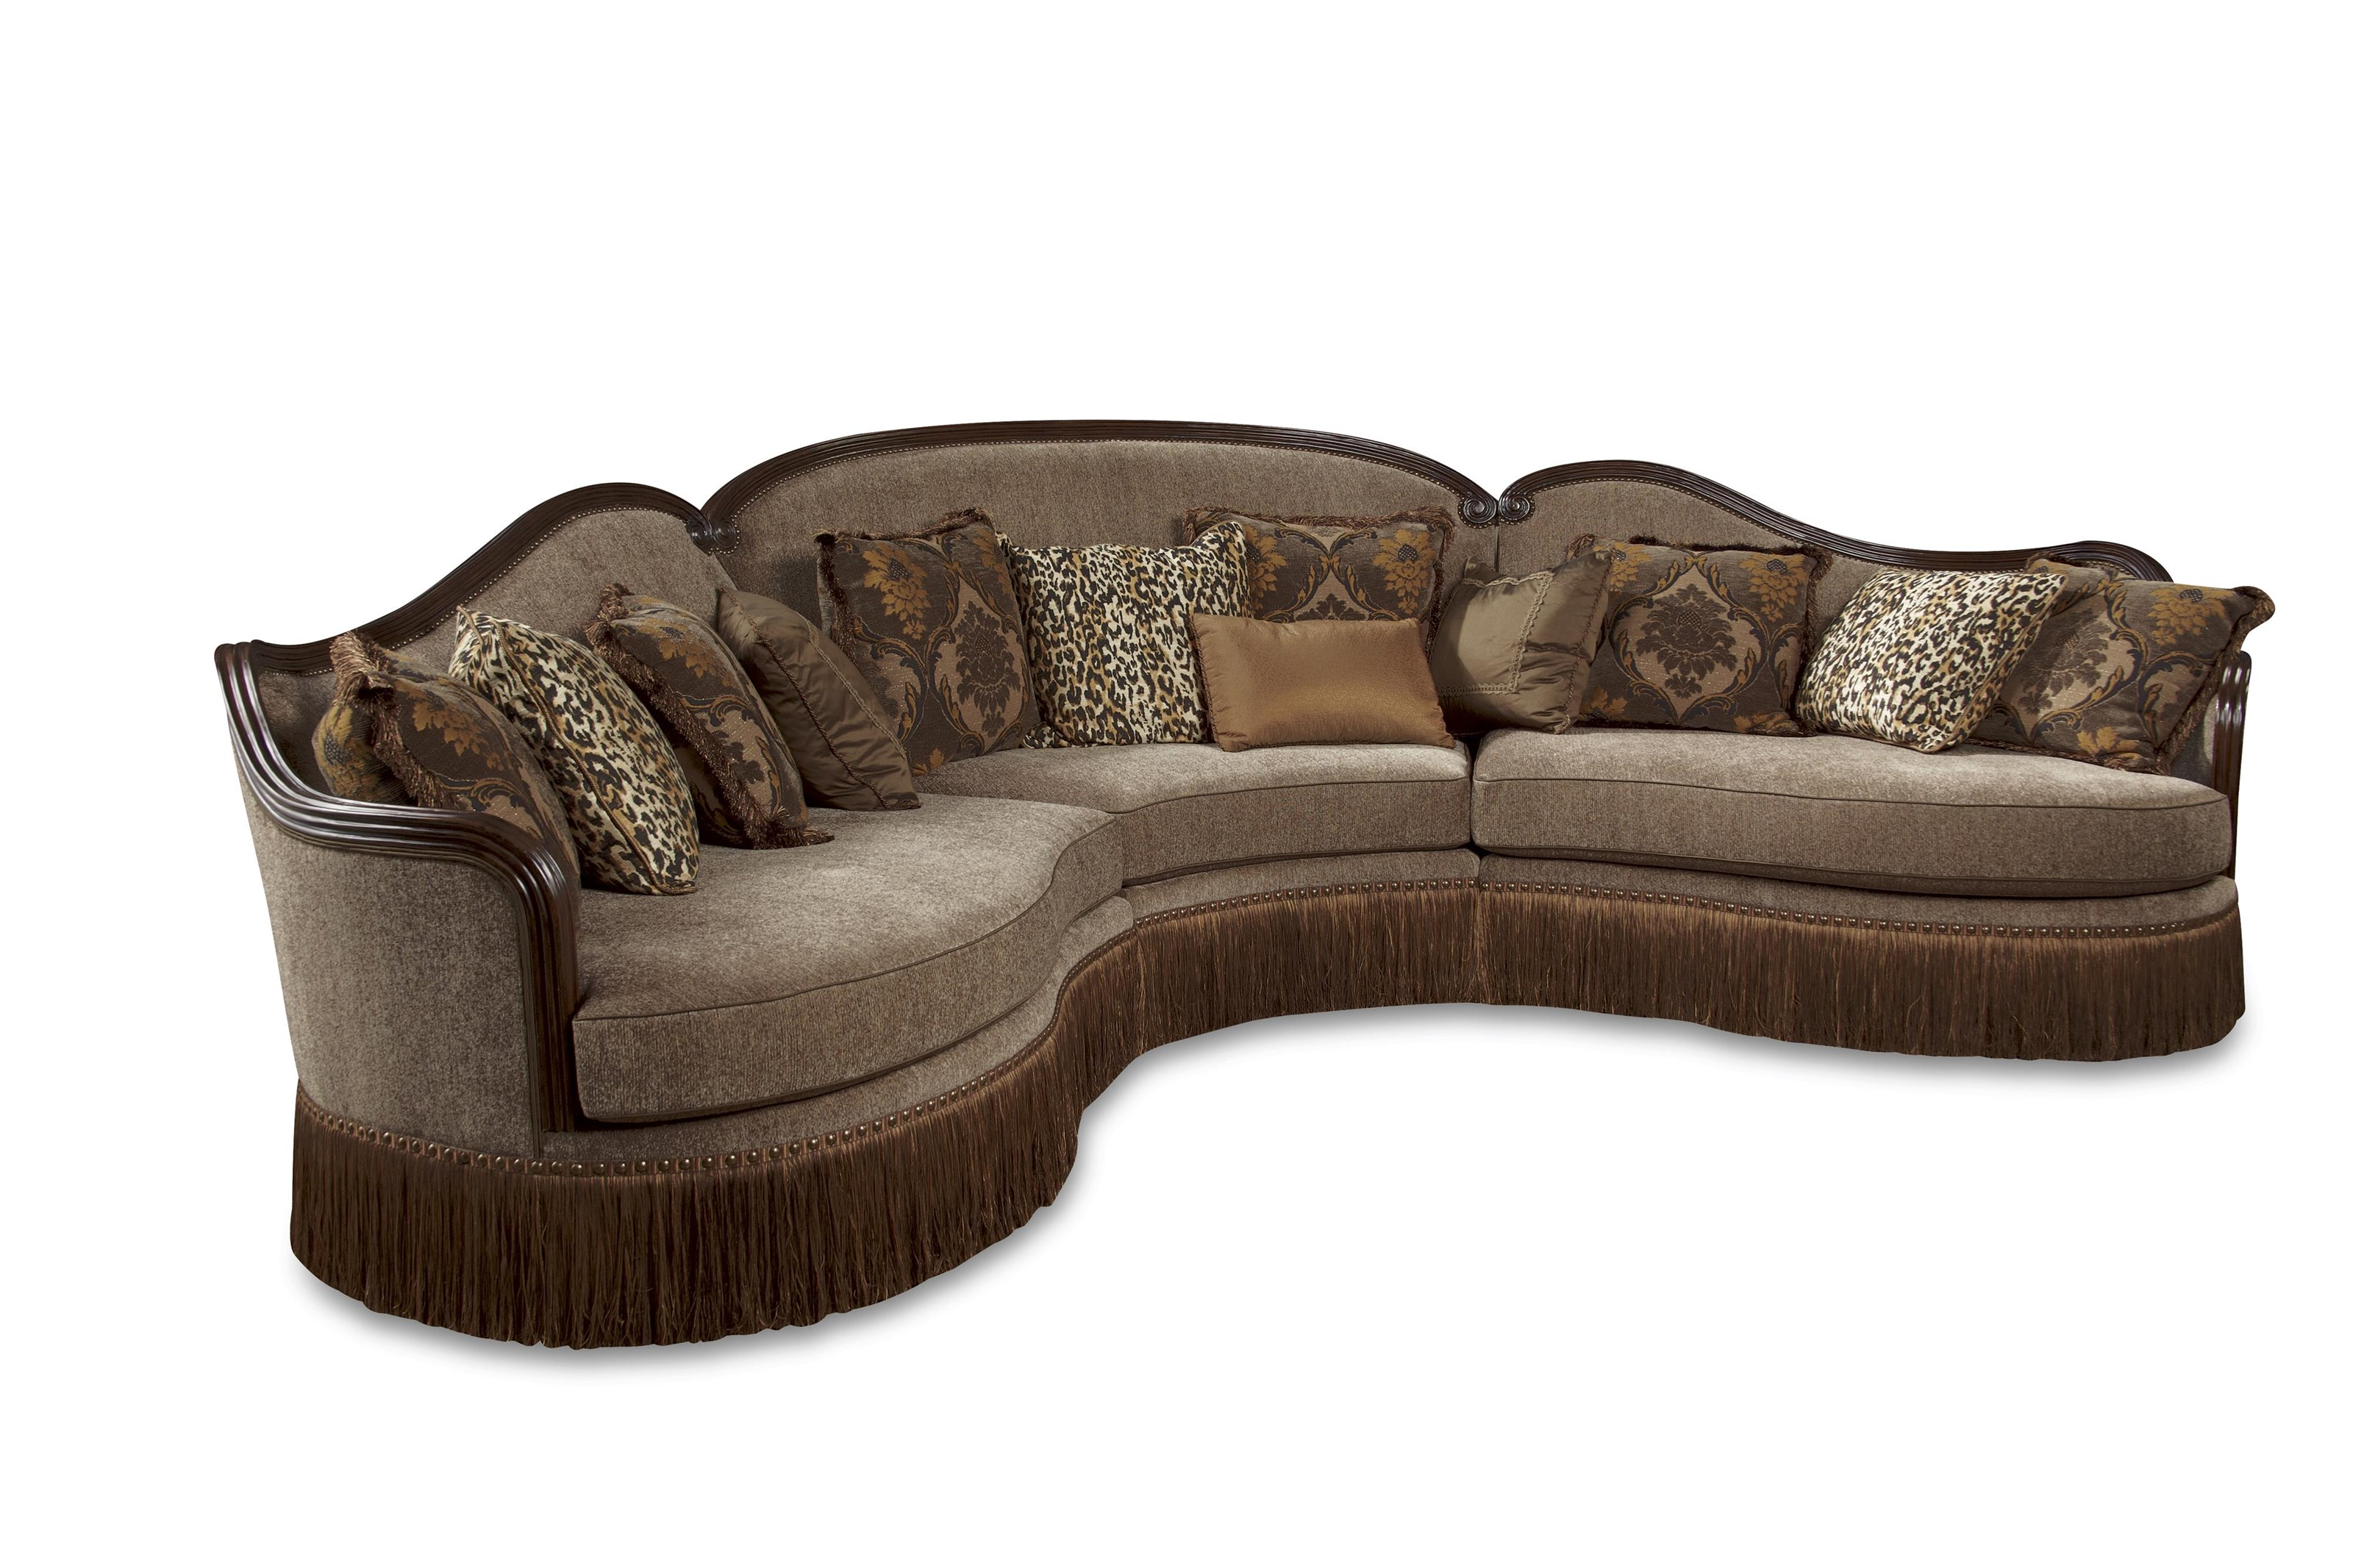 A.R.T. Furniture Inc Giovanna Sectional Sofa - Item Number: 509509+509511+509517--5427AB